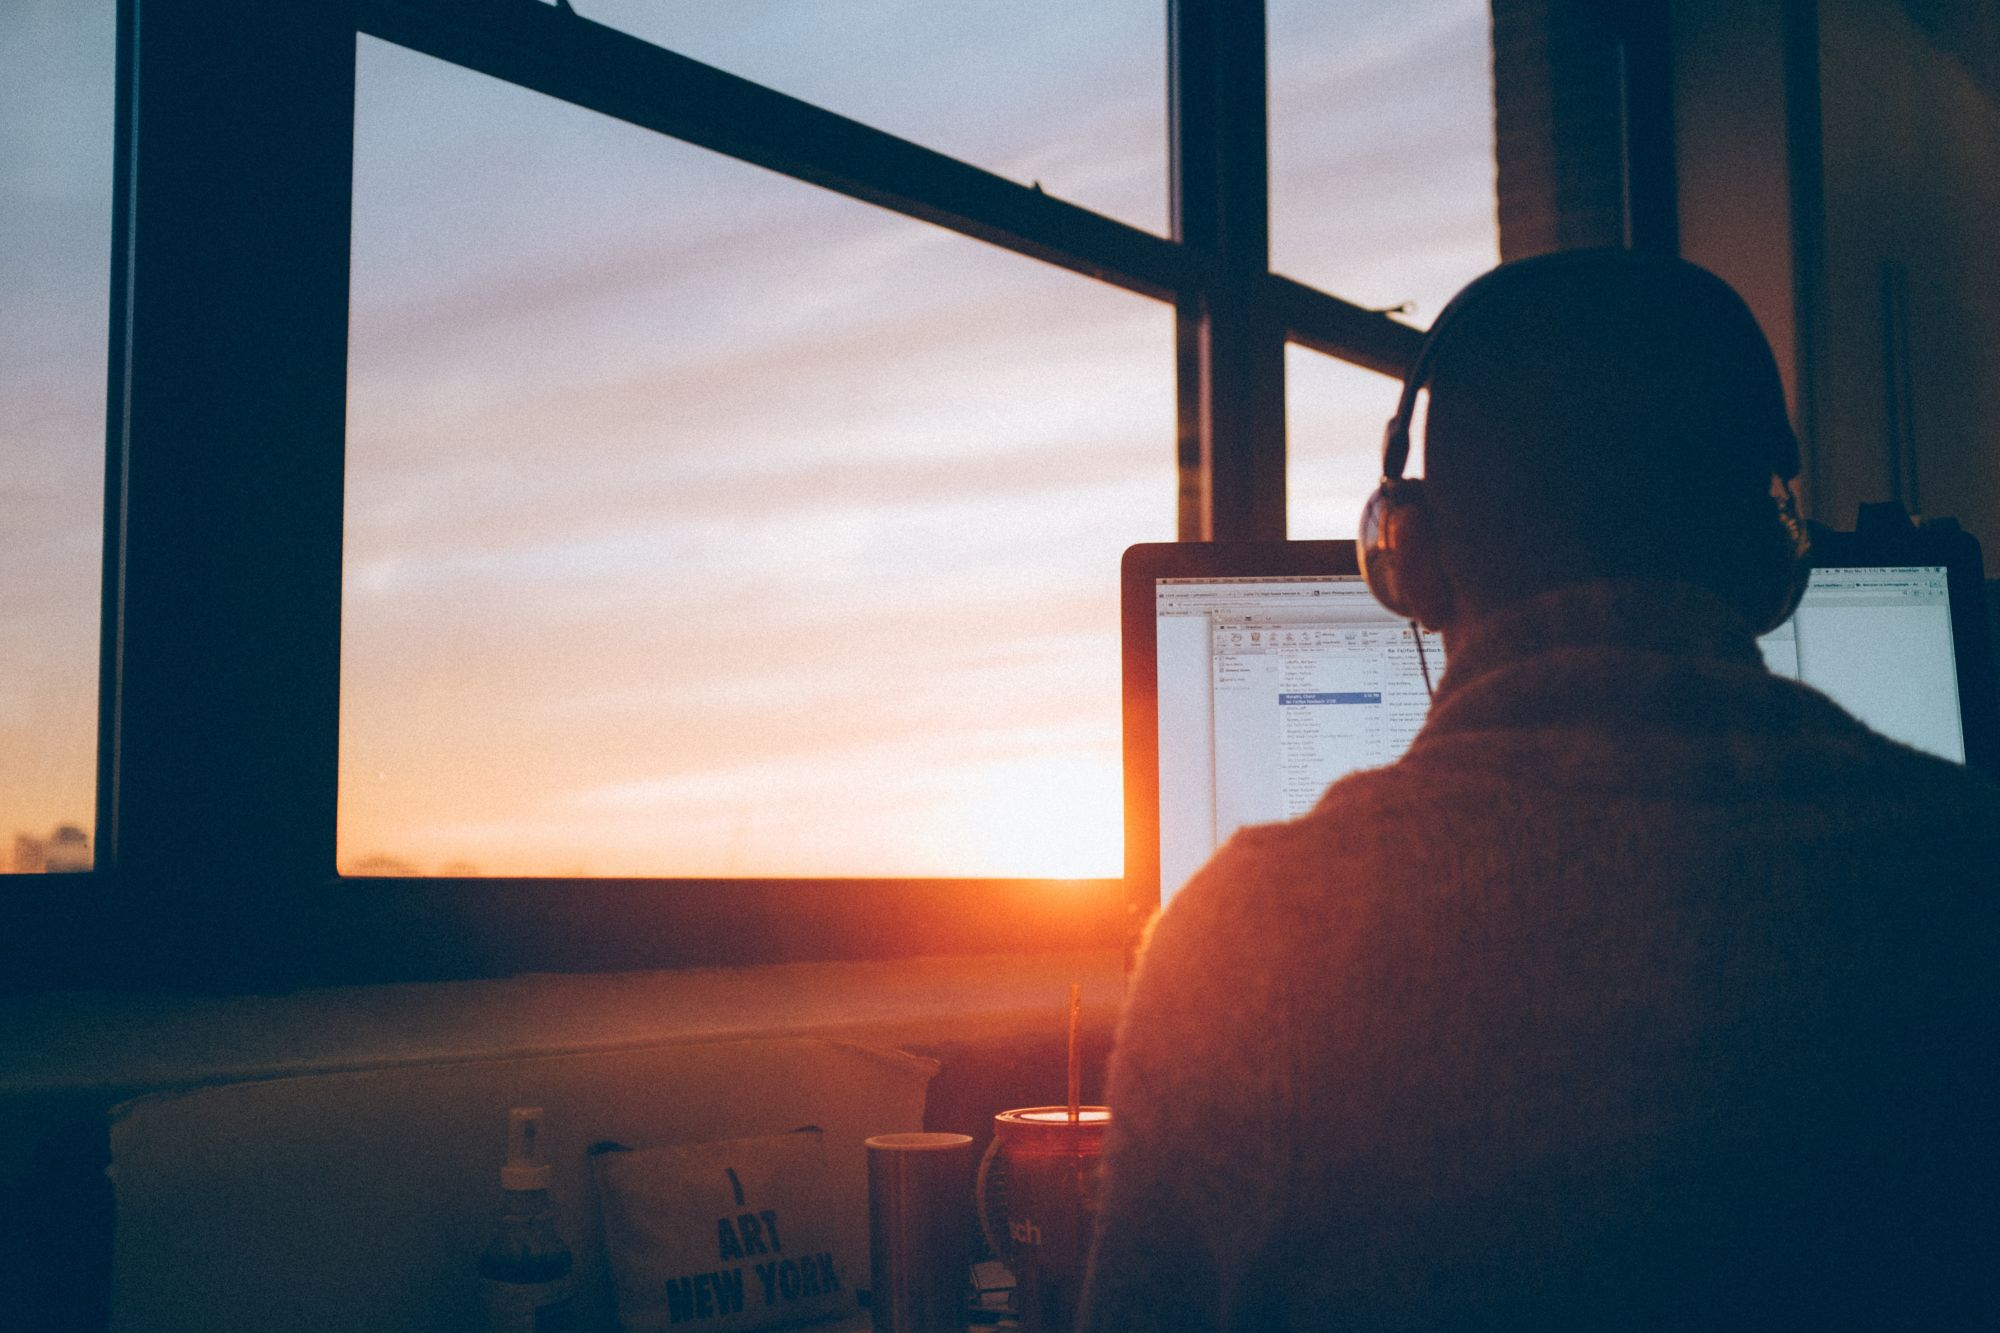 The Best Motivational Podcasts to Listen to For Daily Inspiration